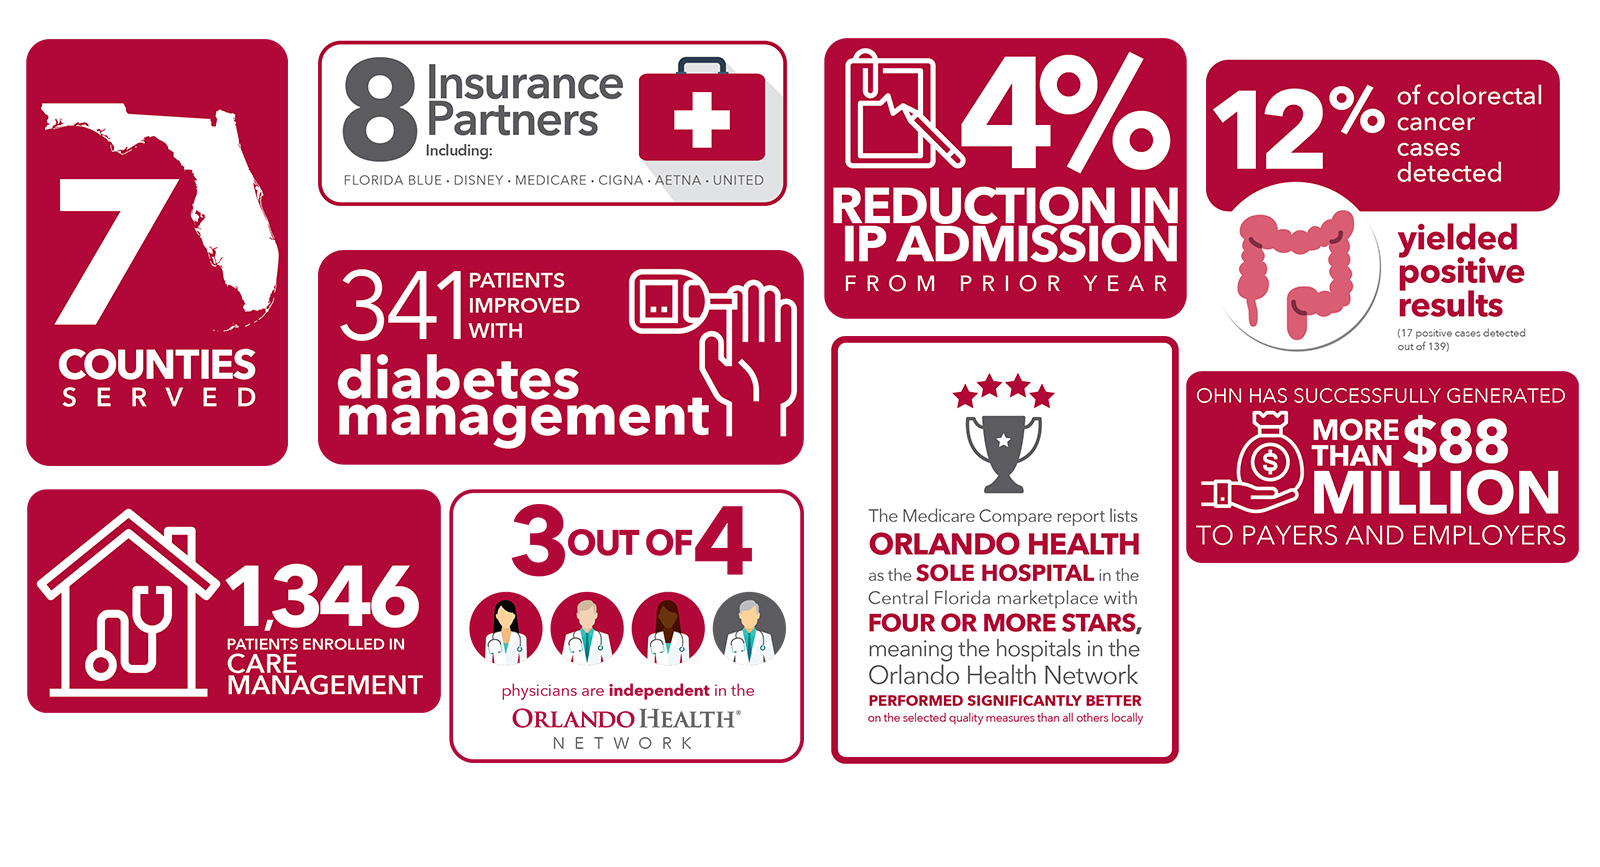 Infographic - Orlando Health Network by the Numbers